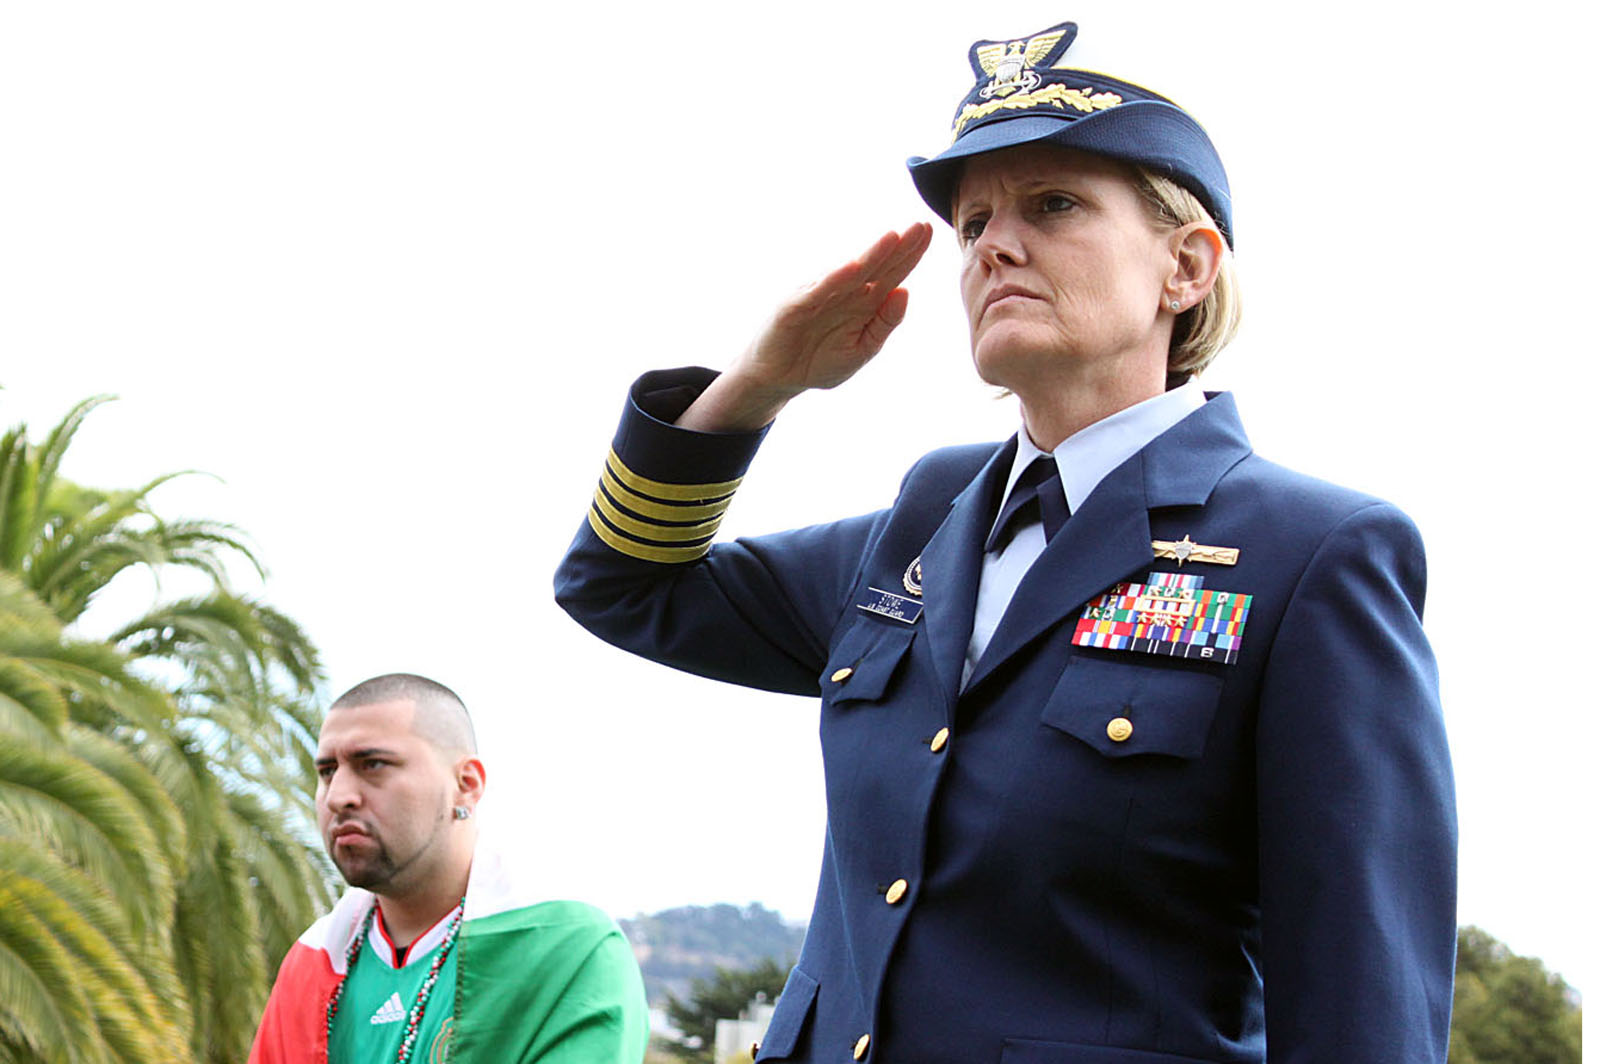 Captain cindy stowe of the u.s. coast guard salutes the stars and